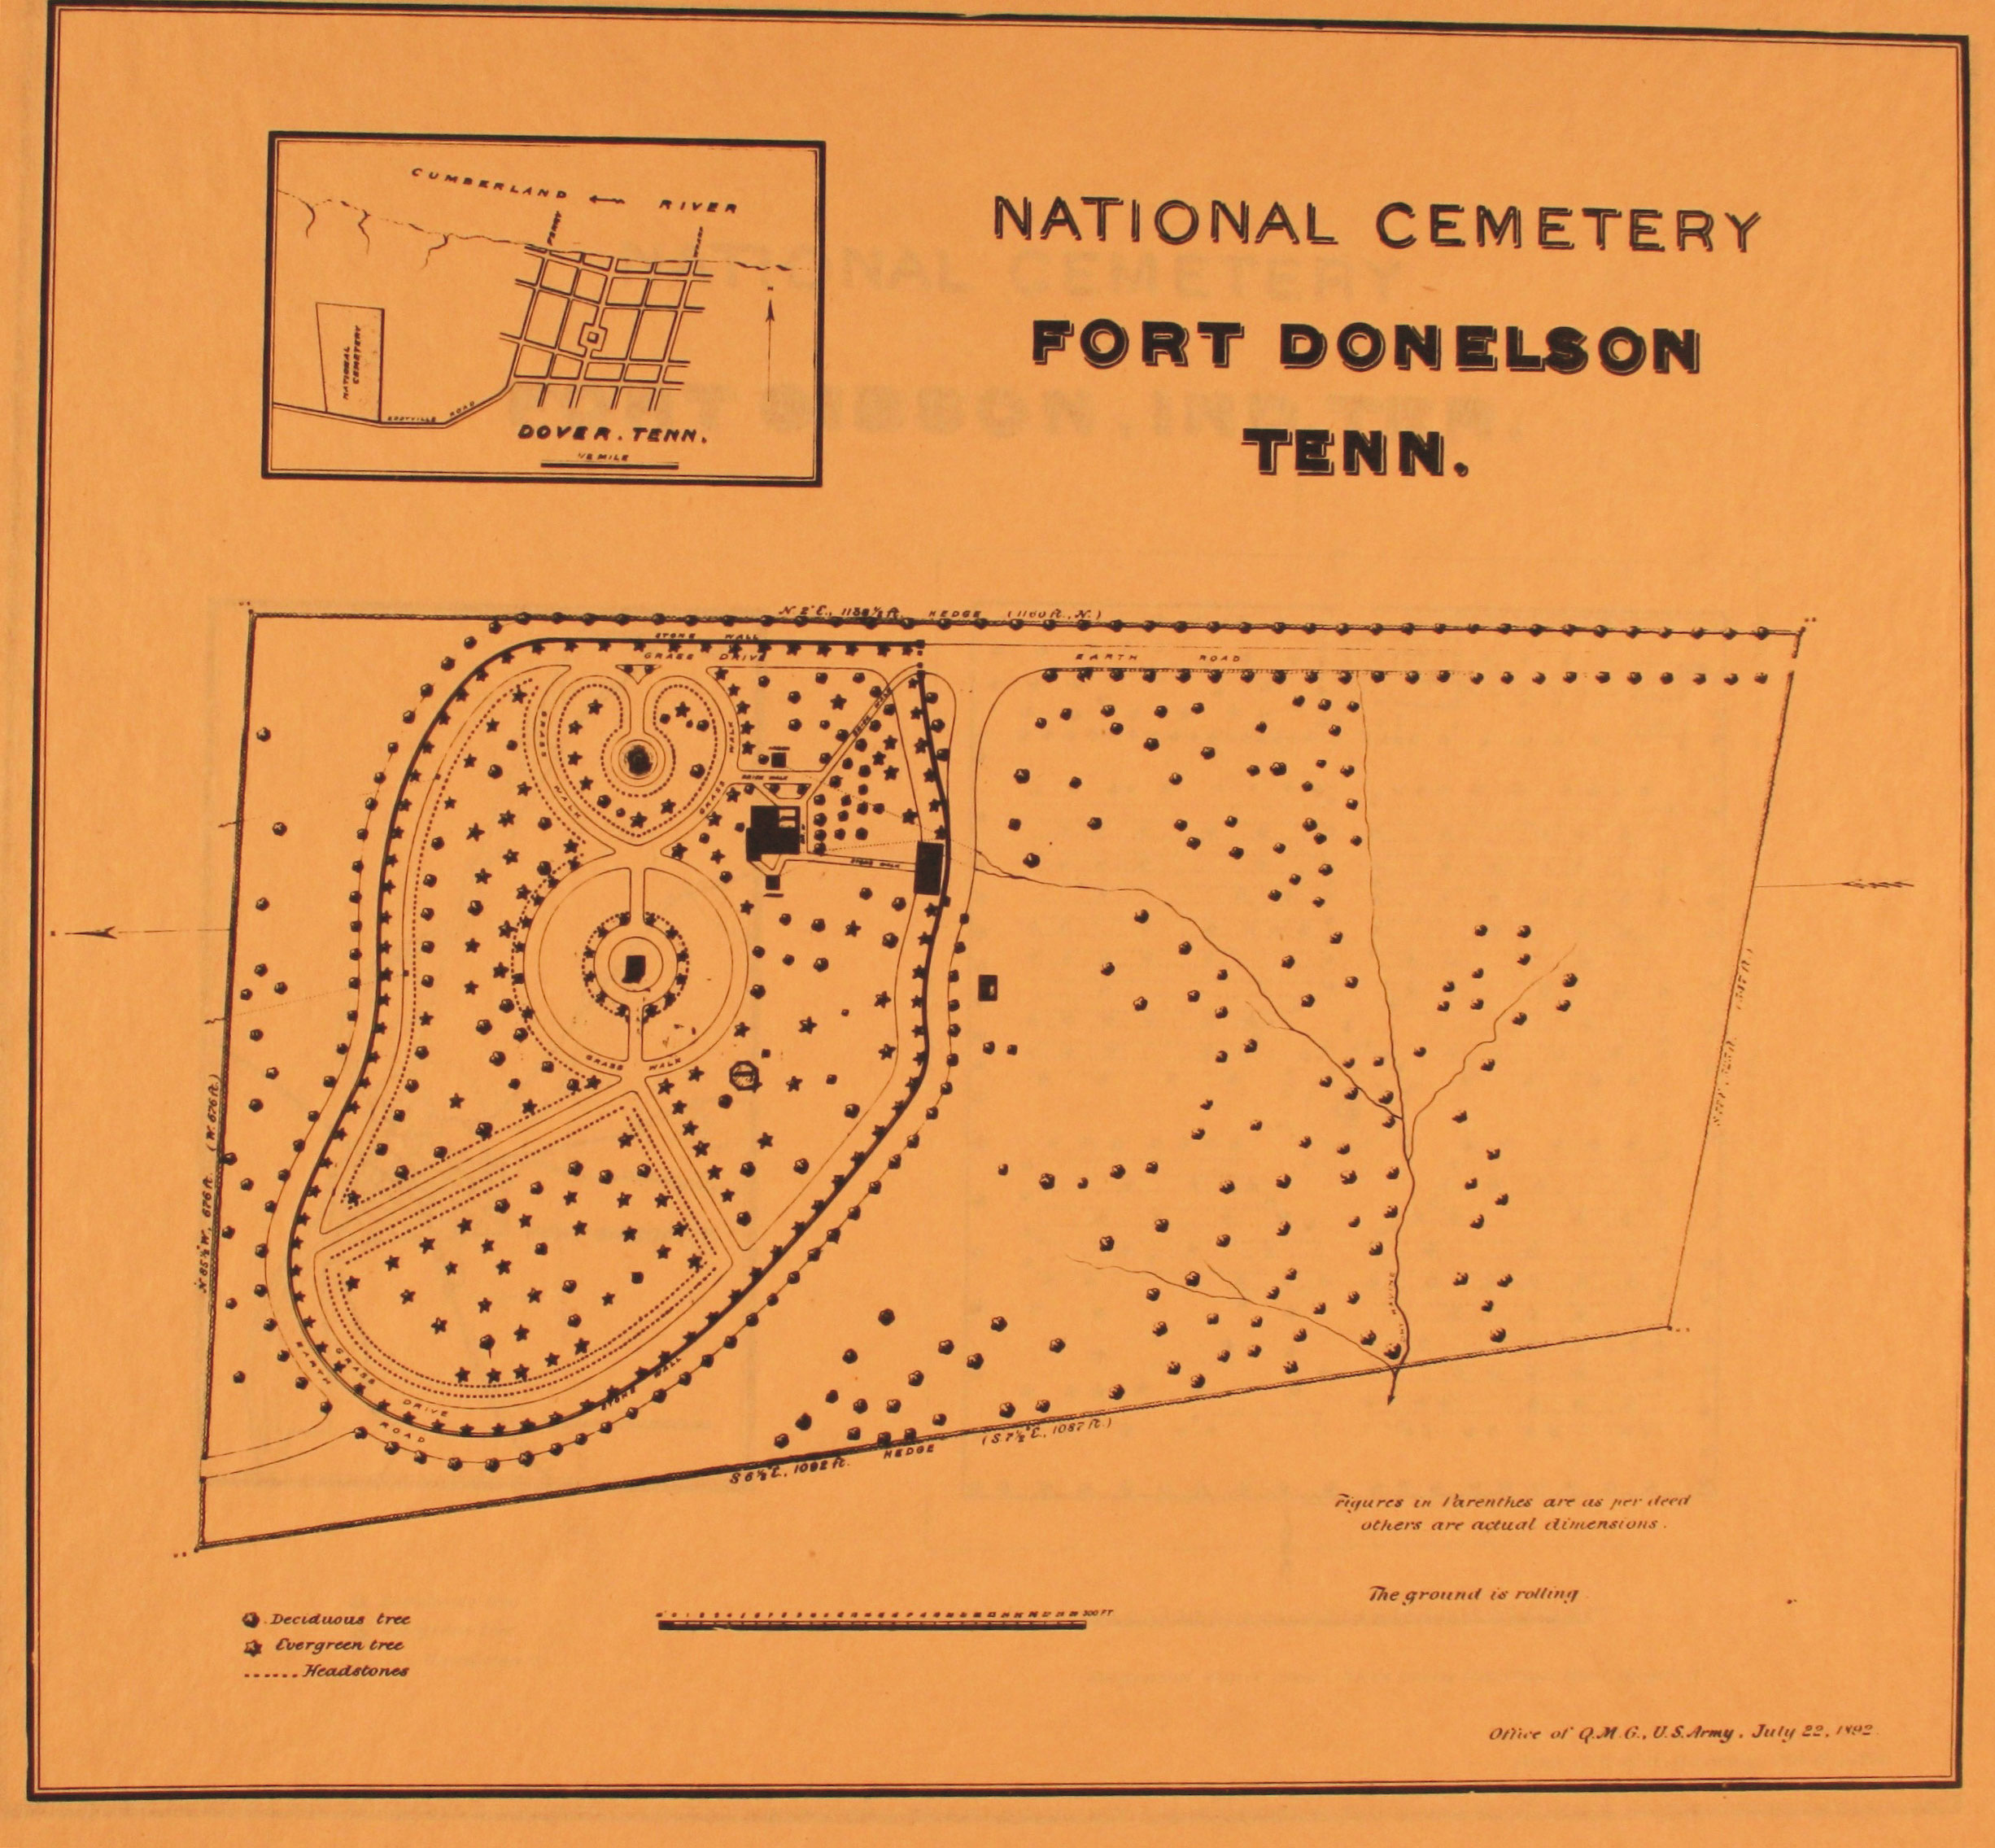 Fort Donelson National Cemetery Fort Donelson National - Fort donelson on us map